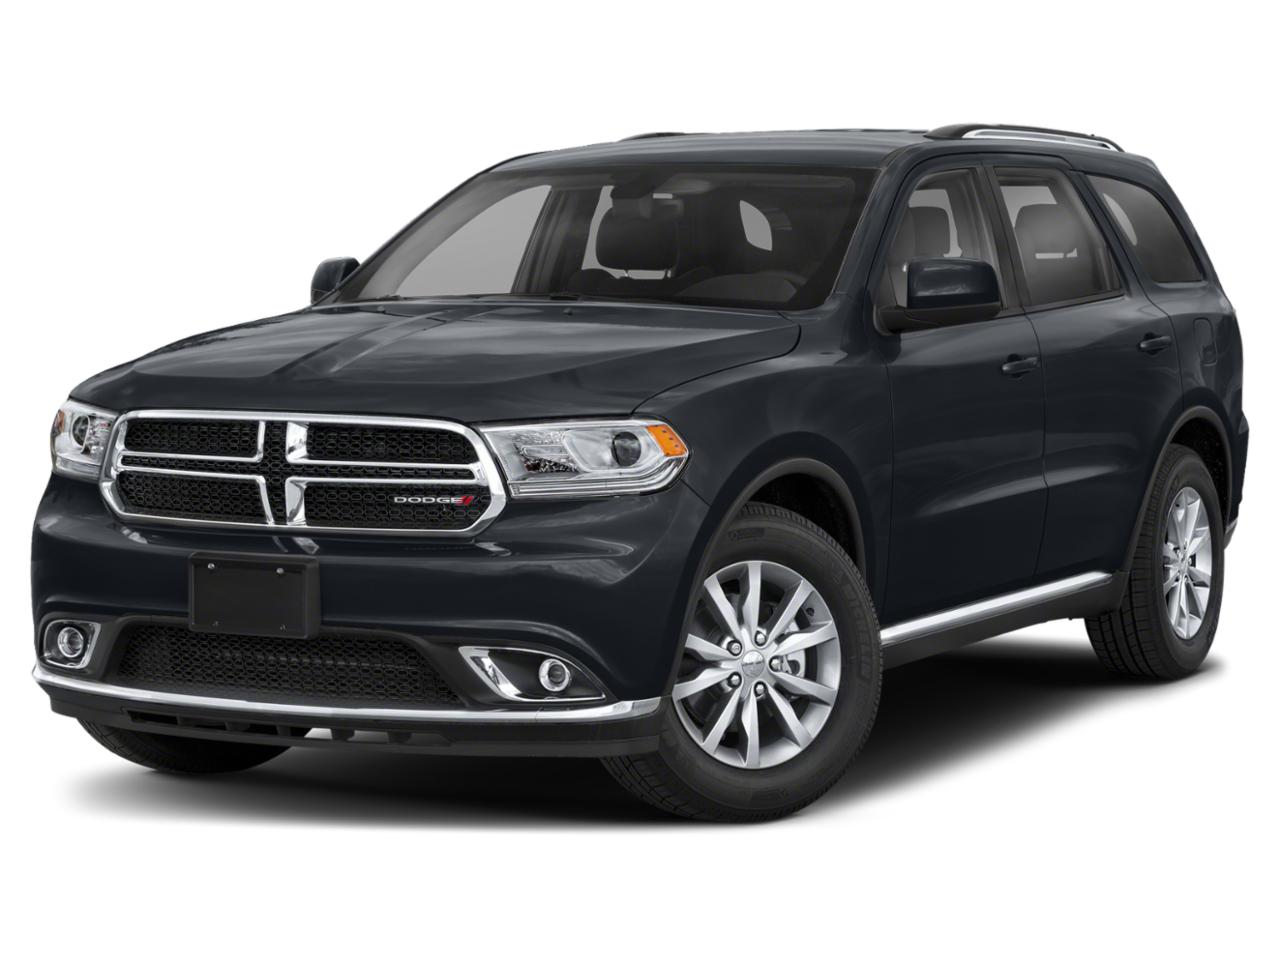 2018 Dodge Durango Vehicle Photo in Washington, NJ 07882